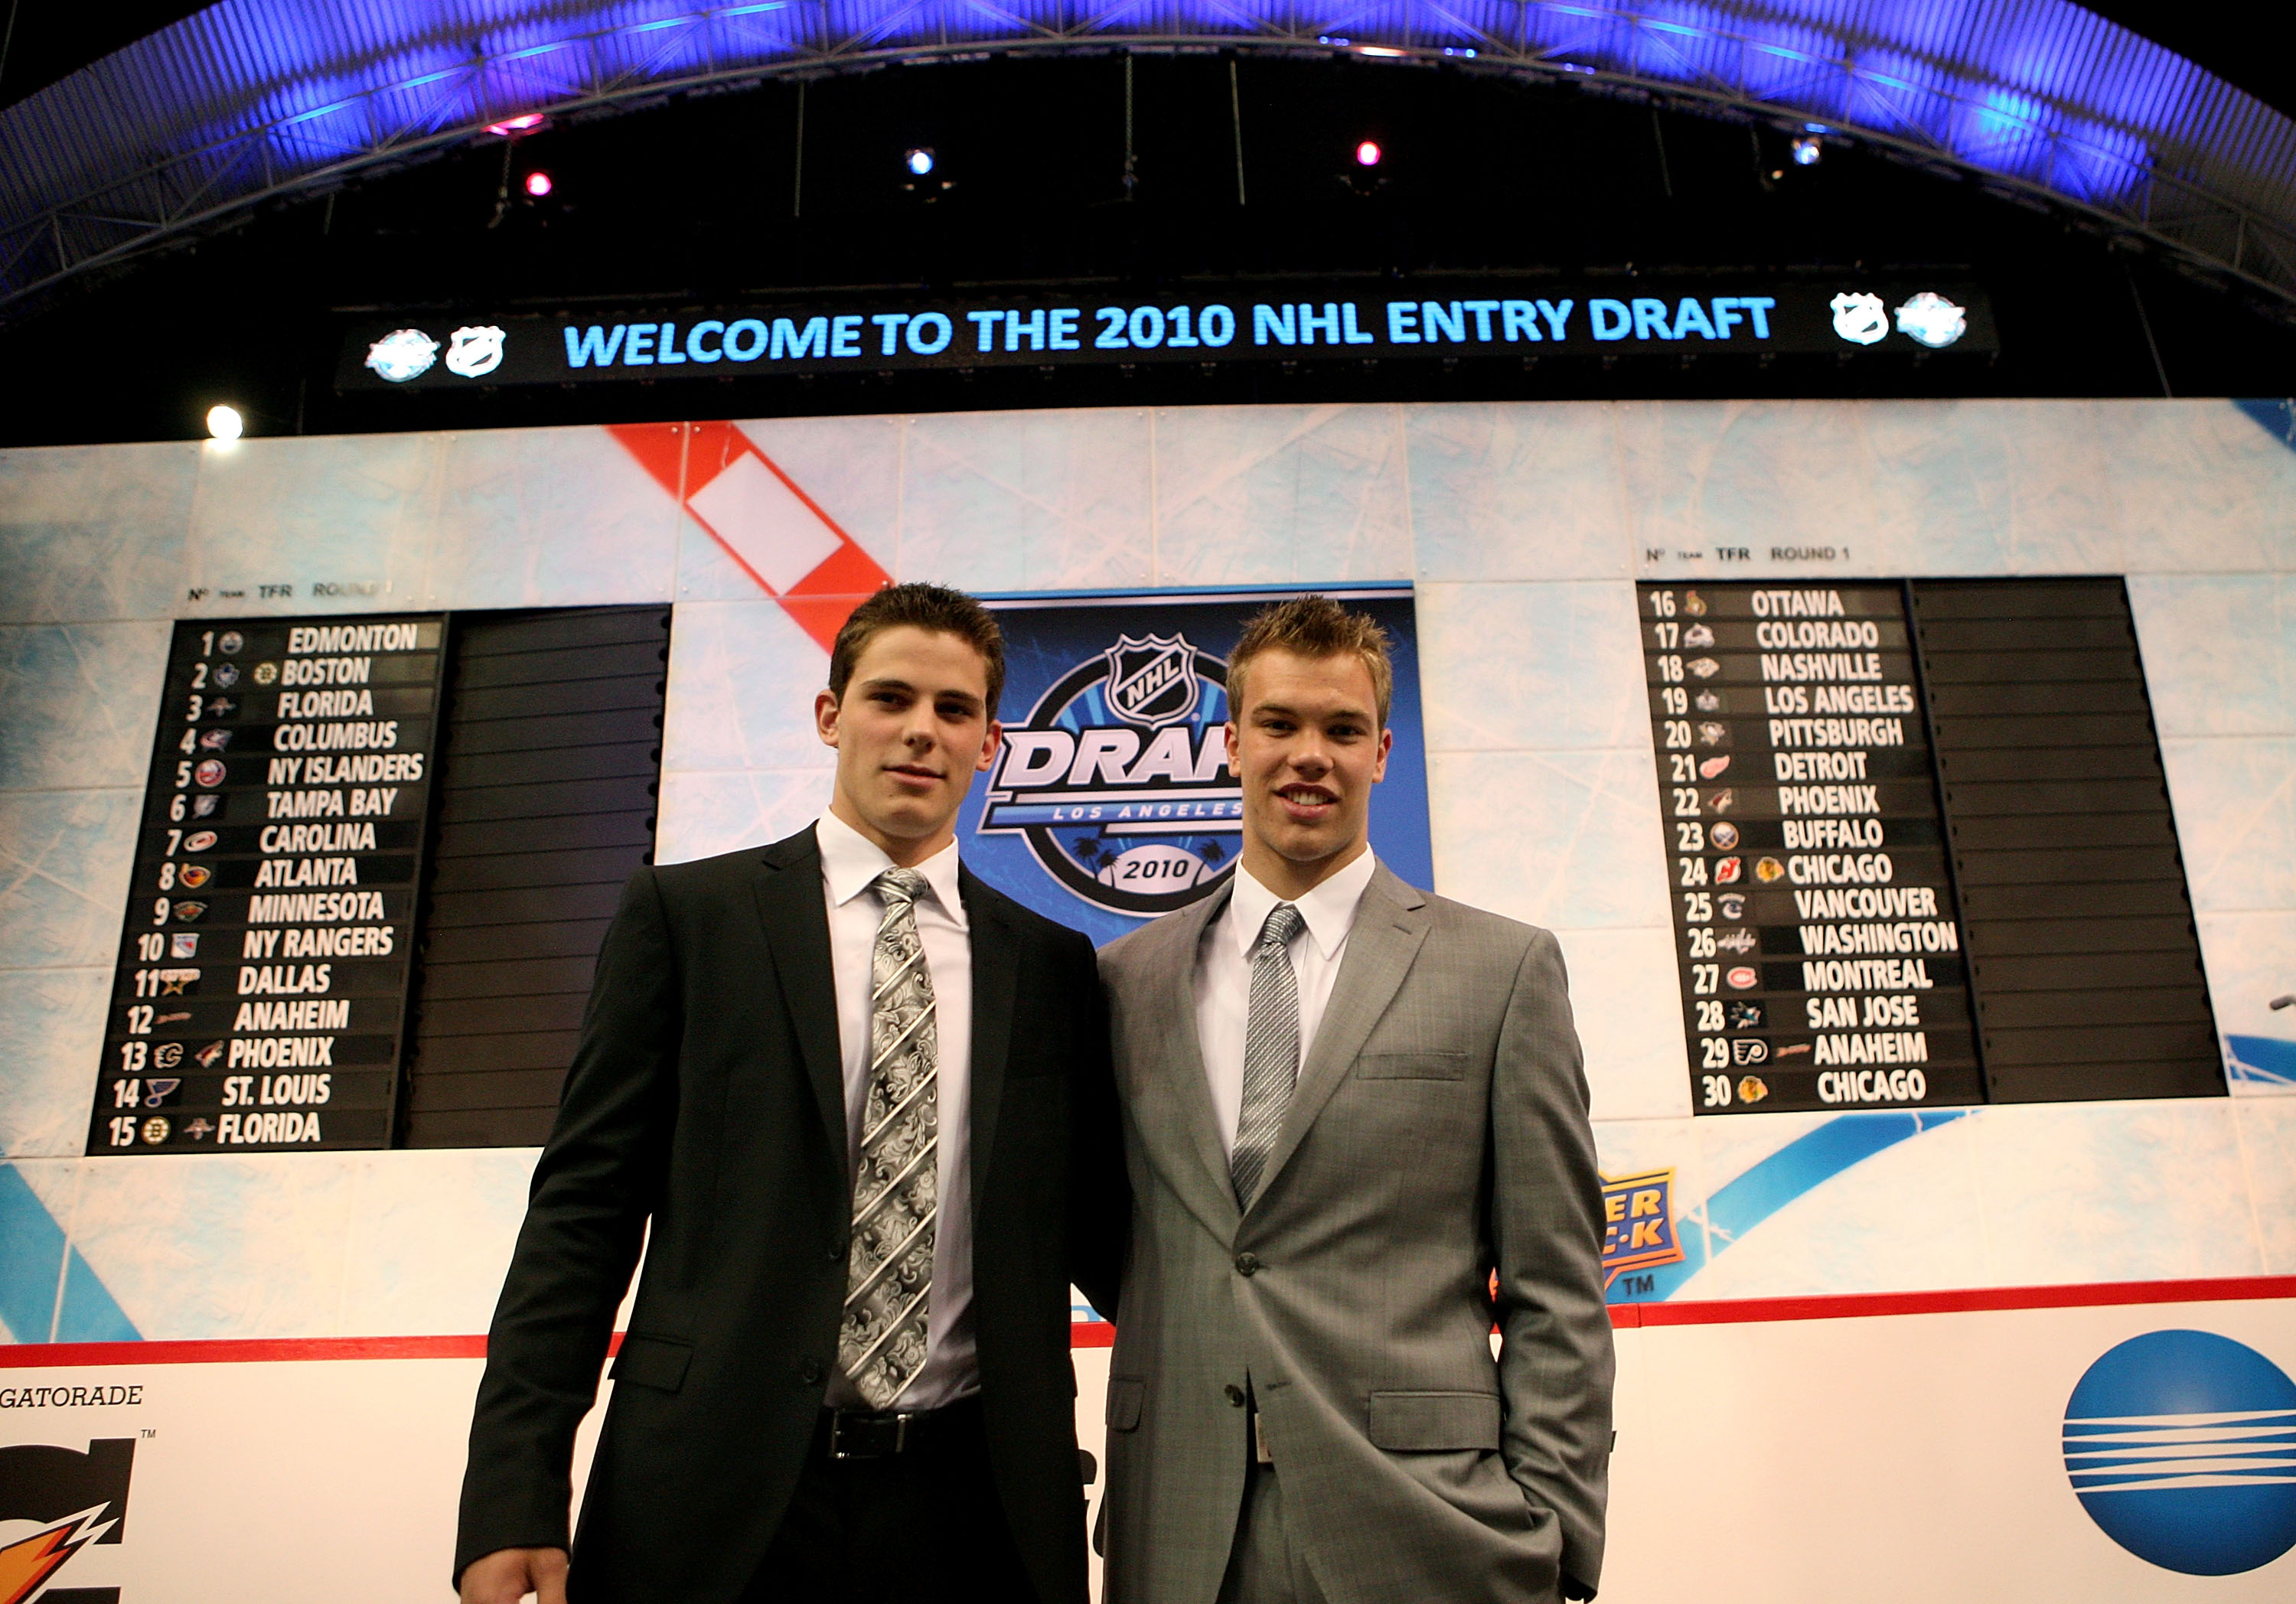 LOS ANGELES, CA - JUNE 25:  (L-R) NHL prospects Tyler Seguin and Taylor Hall pose during the 2010 NHL Entry Draft at Staples Center on June 25, 2010 in Los Angeles, California.  (Photo by Bruce Bennett/Getty Images)